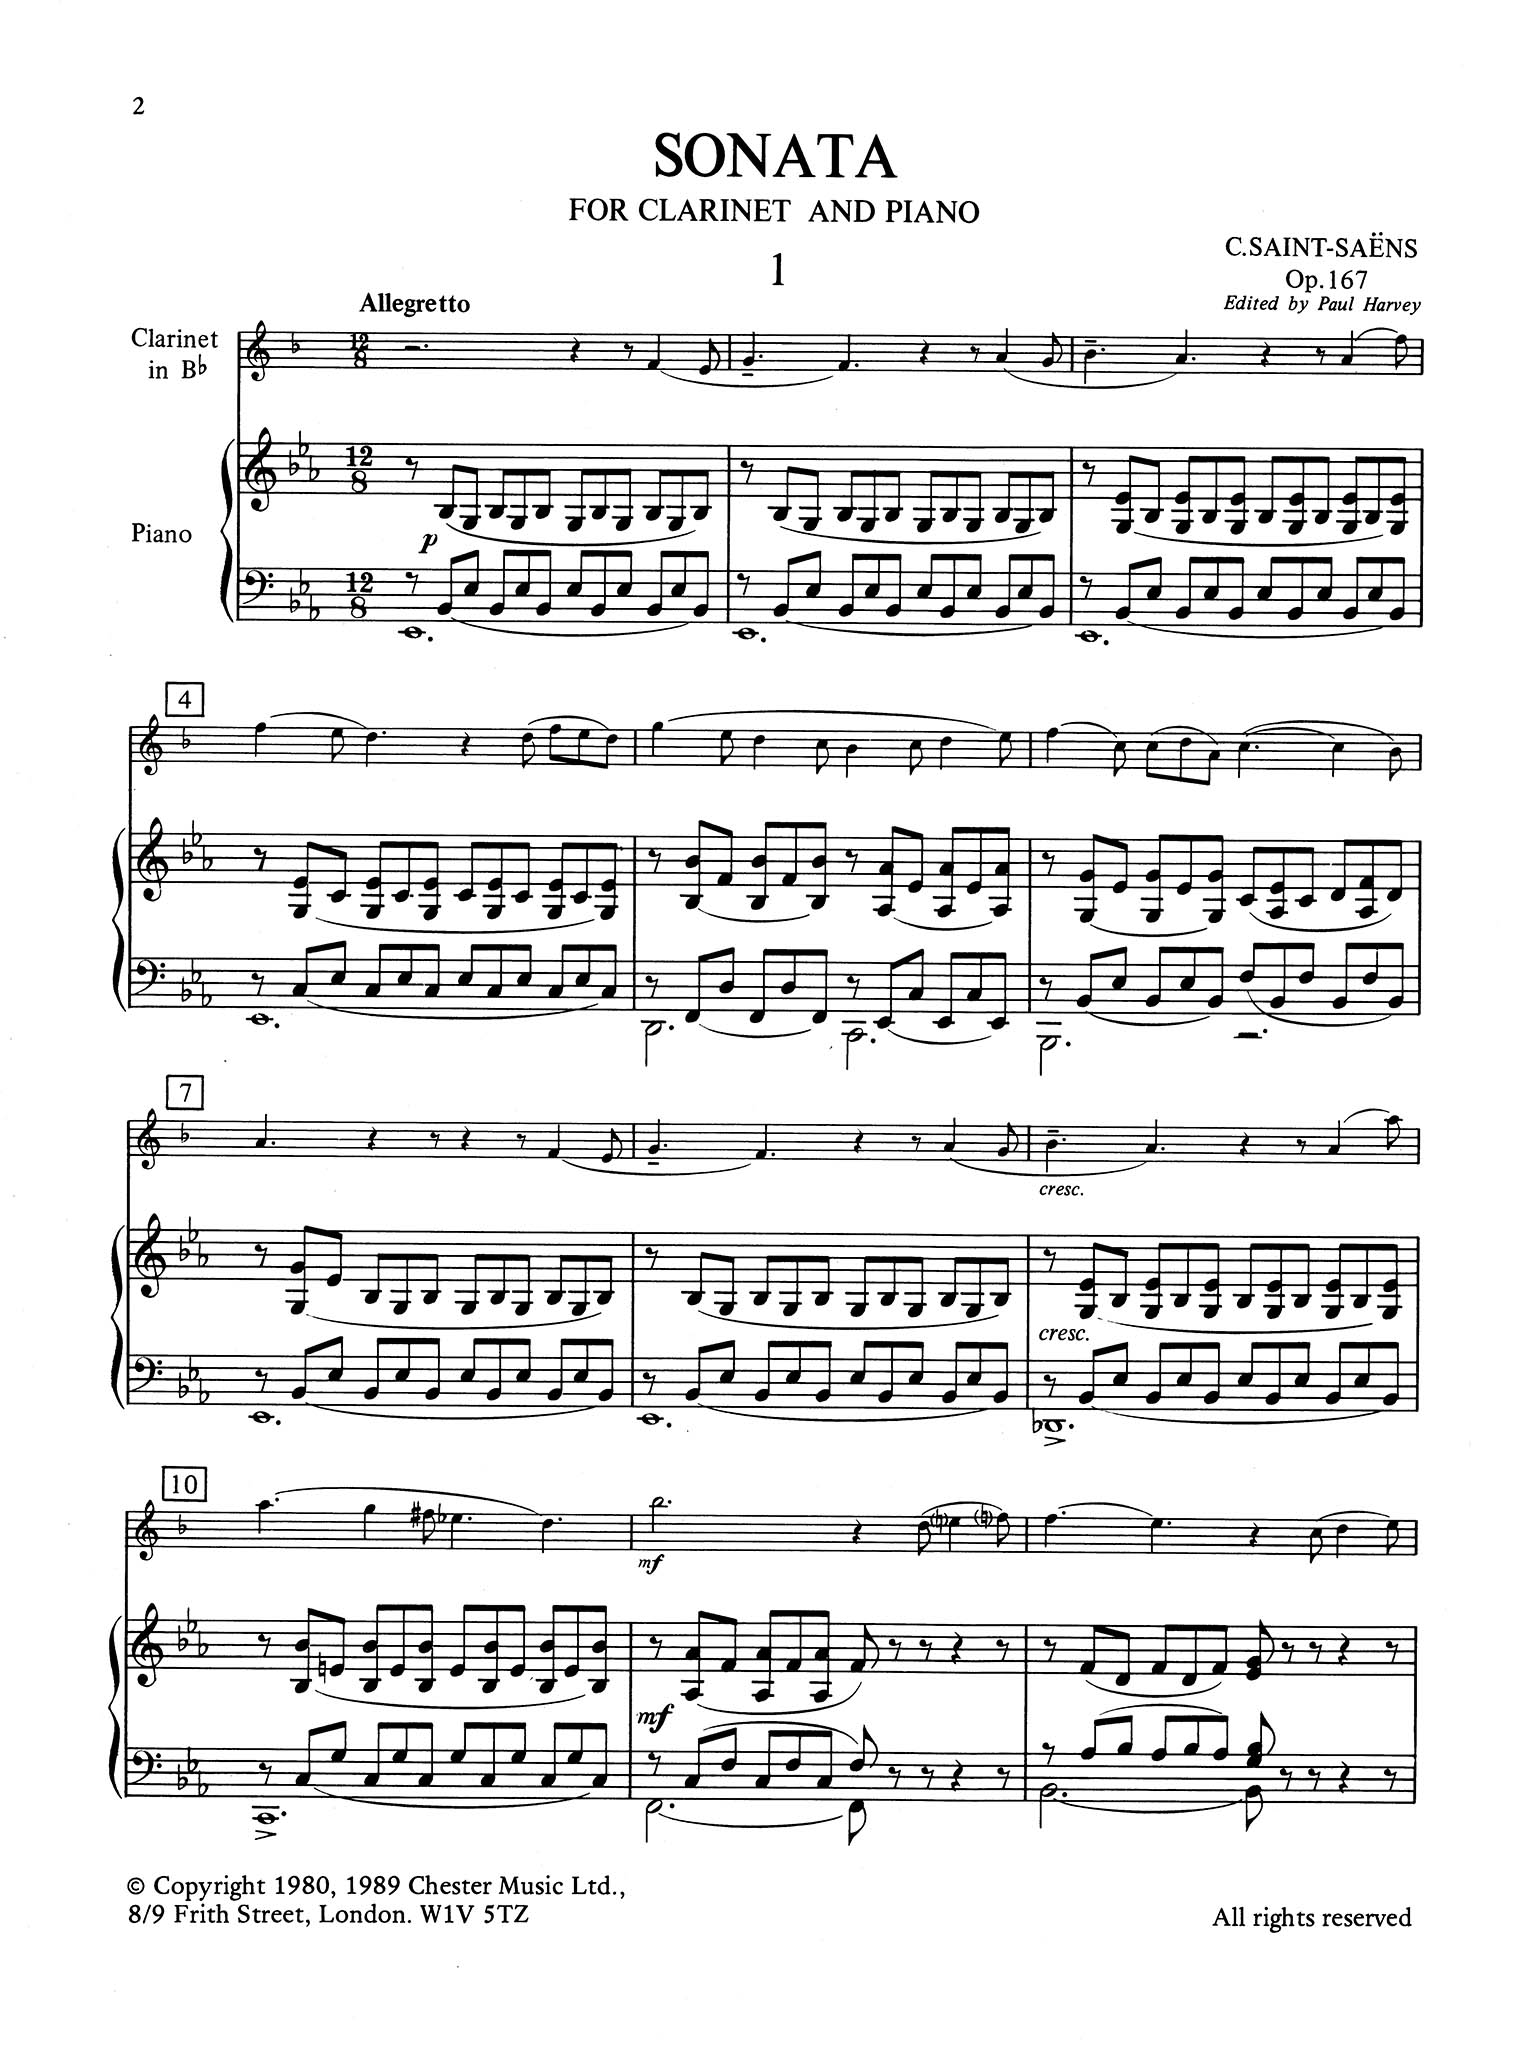 Sonata for Clarinet & Piano, Op. 167 - Movement 1